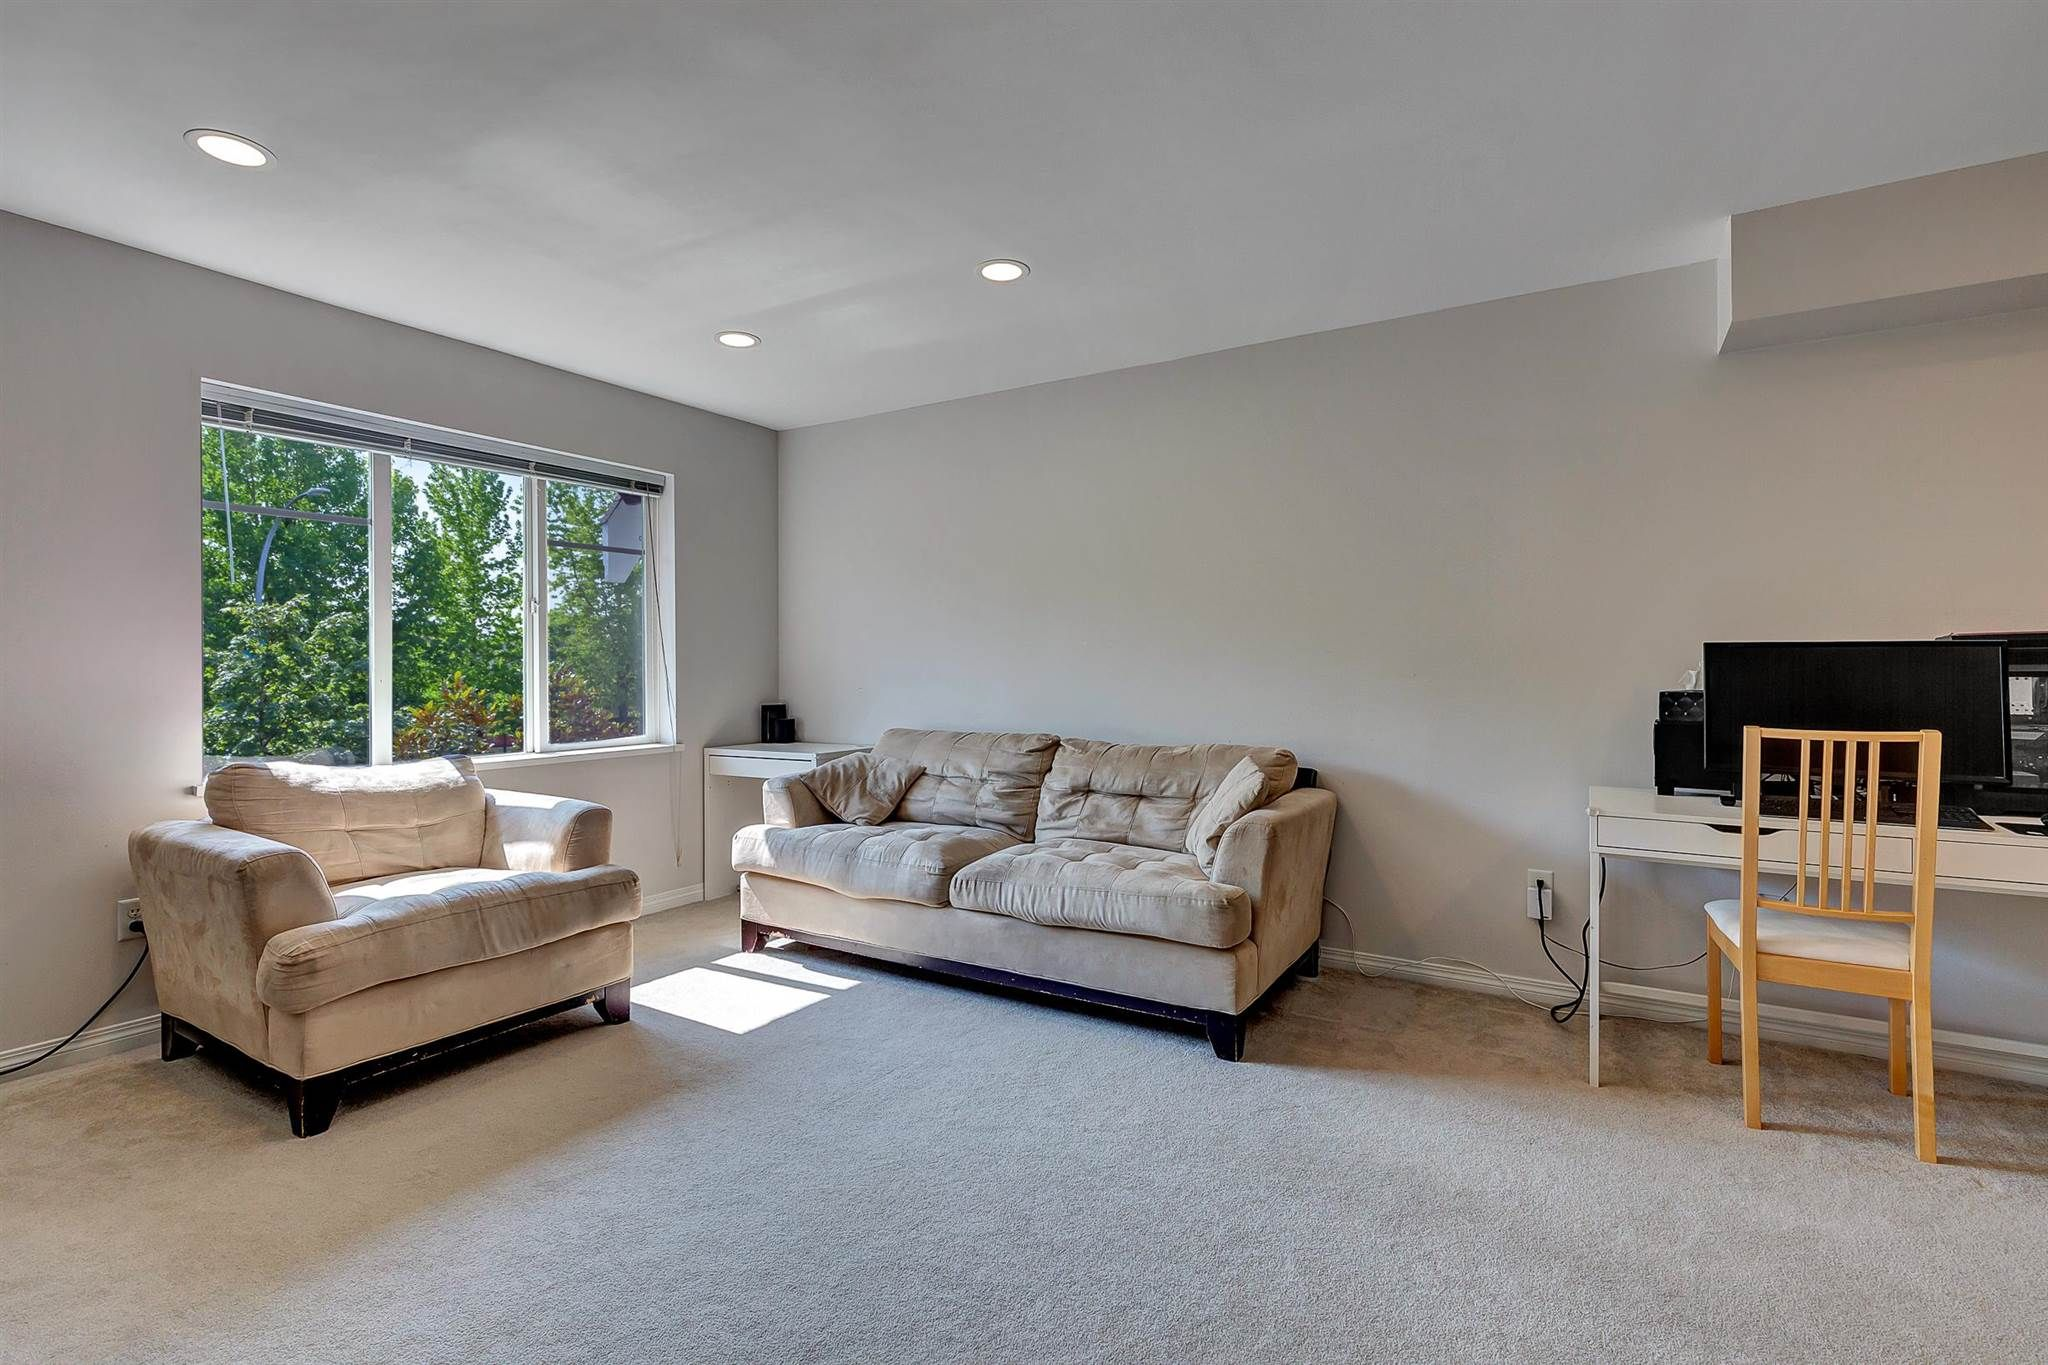 """Photo 7: Photos: 9 15871 85 Avenue in Surrey: Fleetwood Tynehead Townhouse for sale in """"Huckleberry"""" : MLS®# R2606668"""